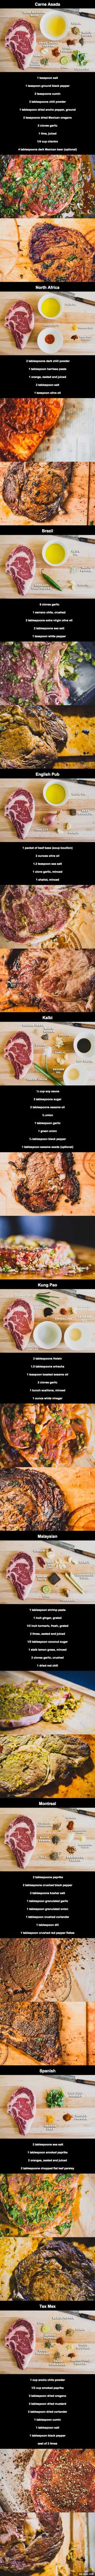 10 Ways To Add Some Spice To Your Steaks